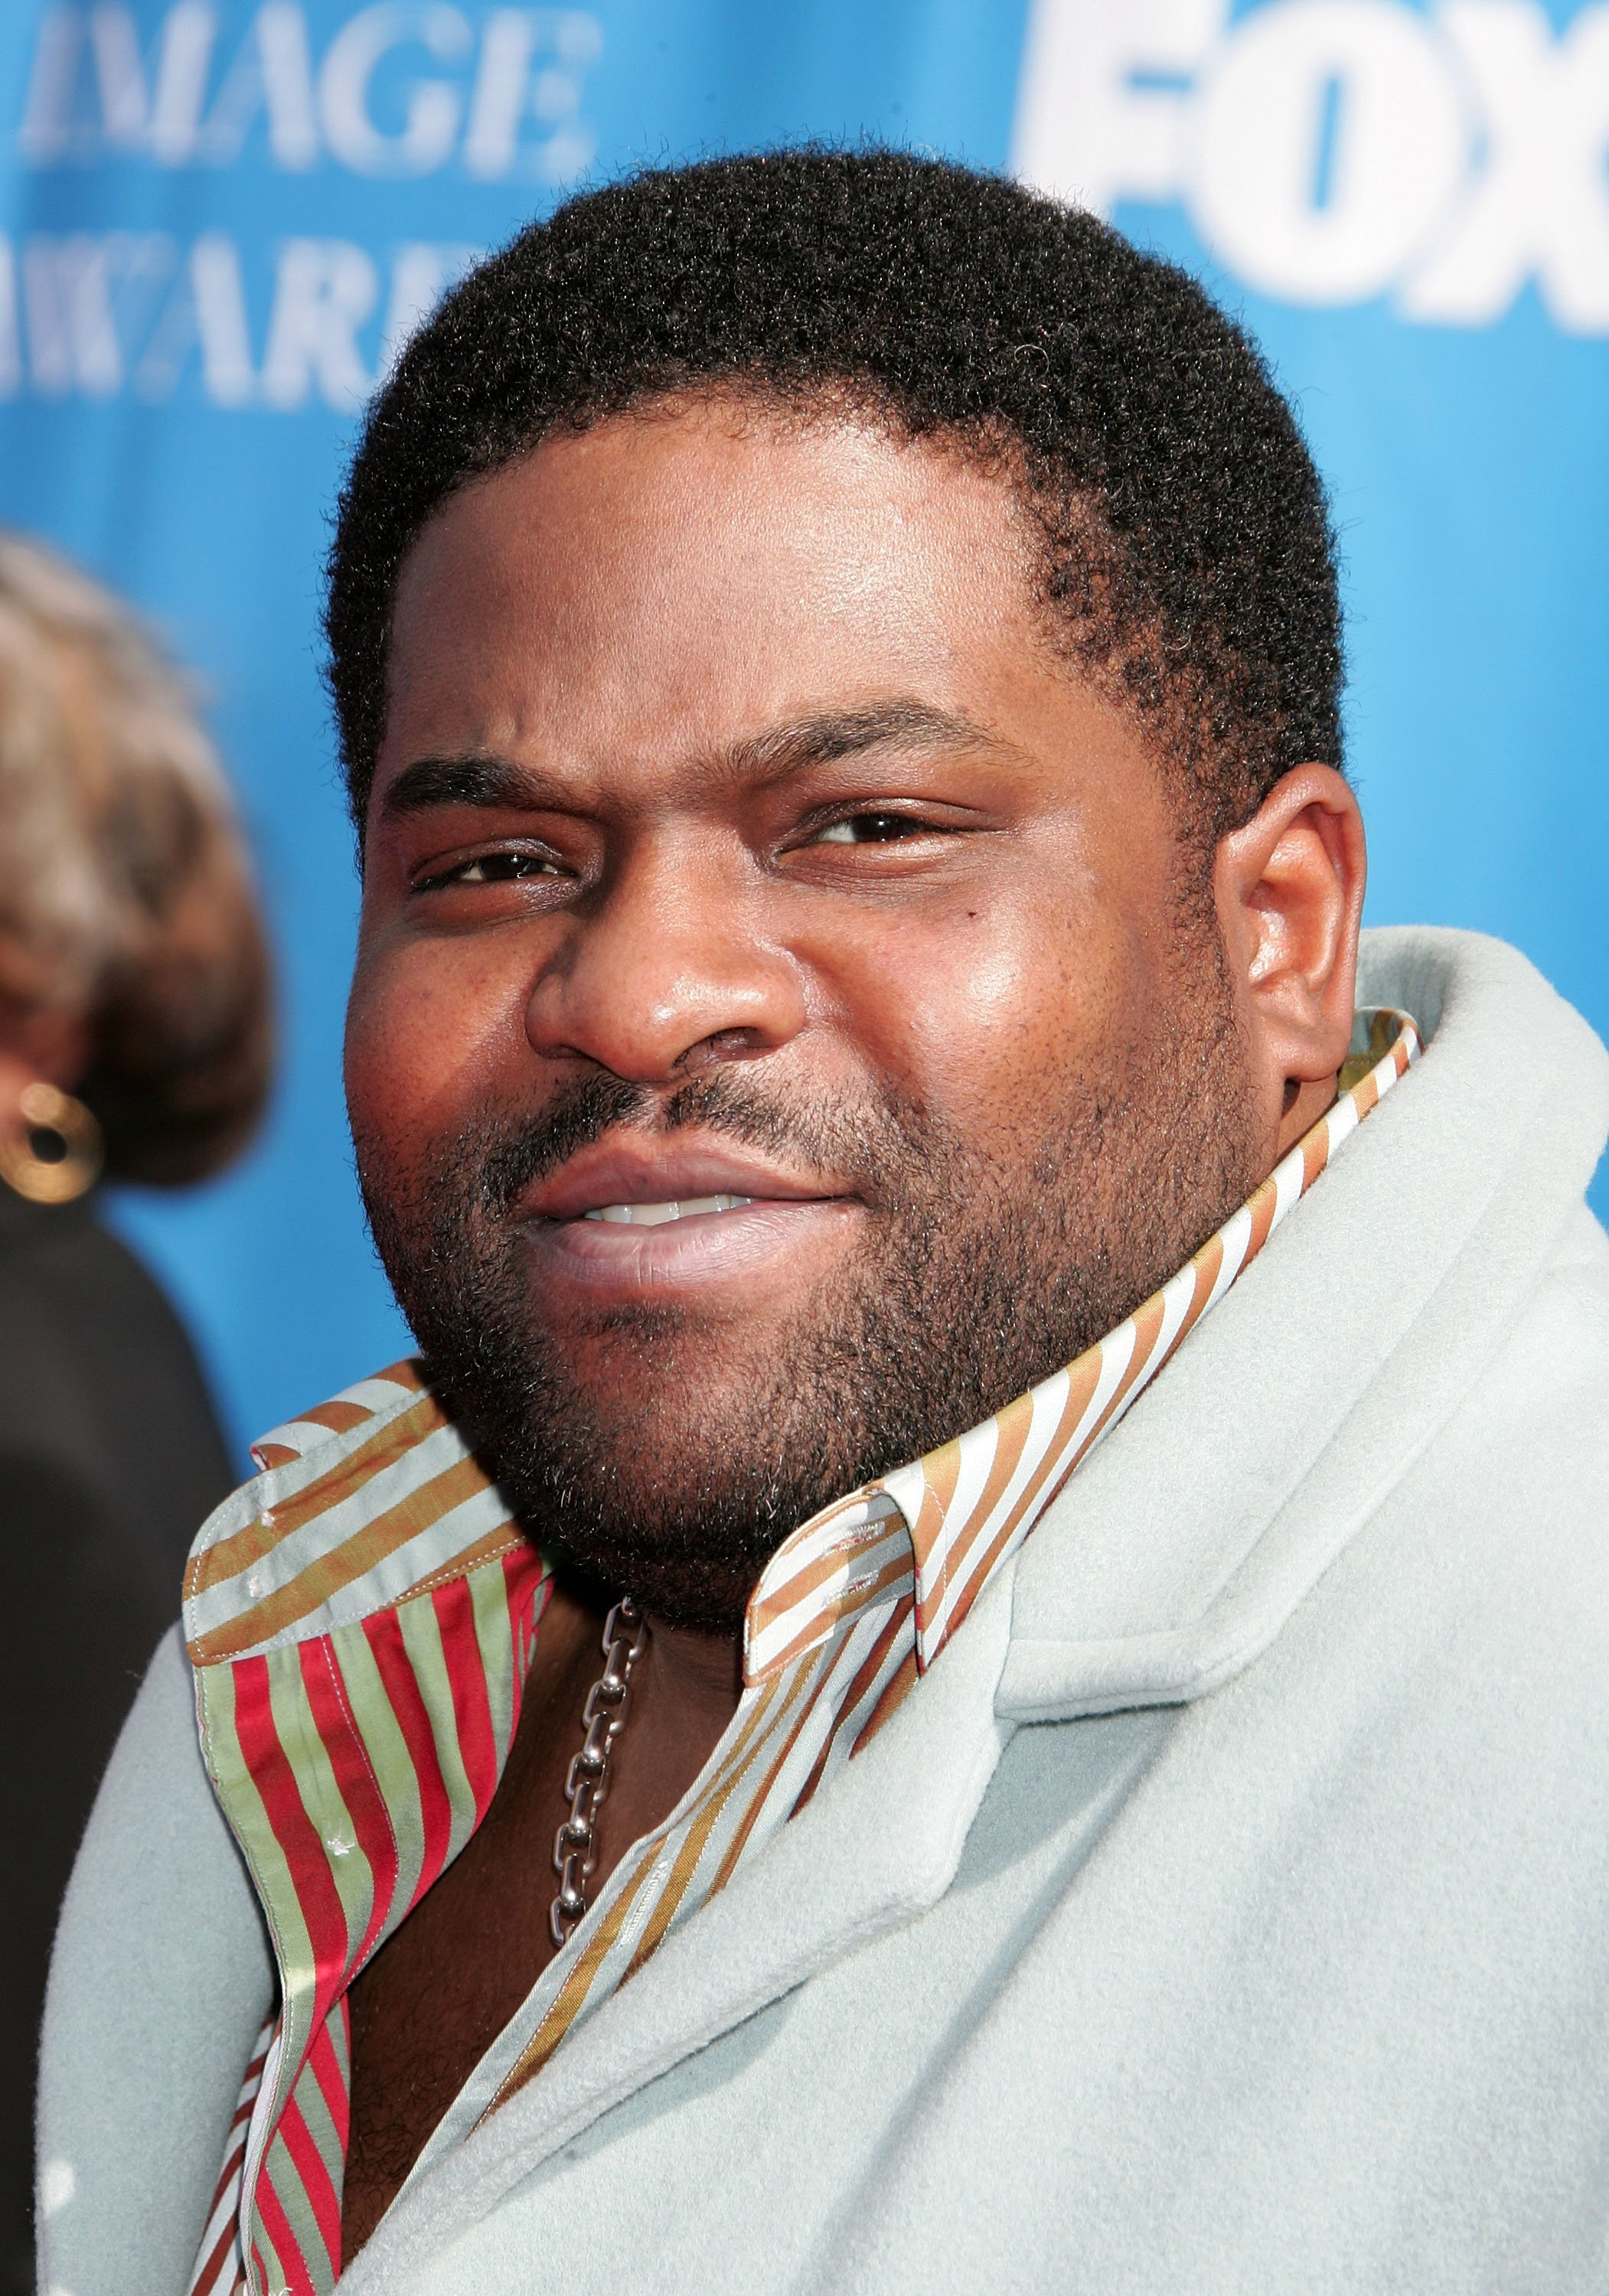 Sean Levert arrives at the 39th NAACP Image Awards held at the Shrine Auditorium on February 14, 2008.   Photo: GettyImages